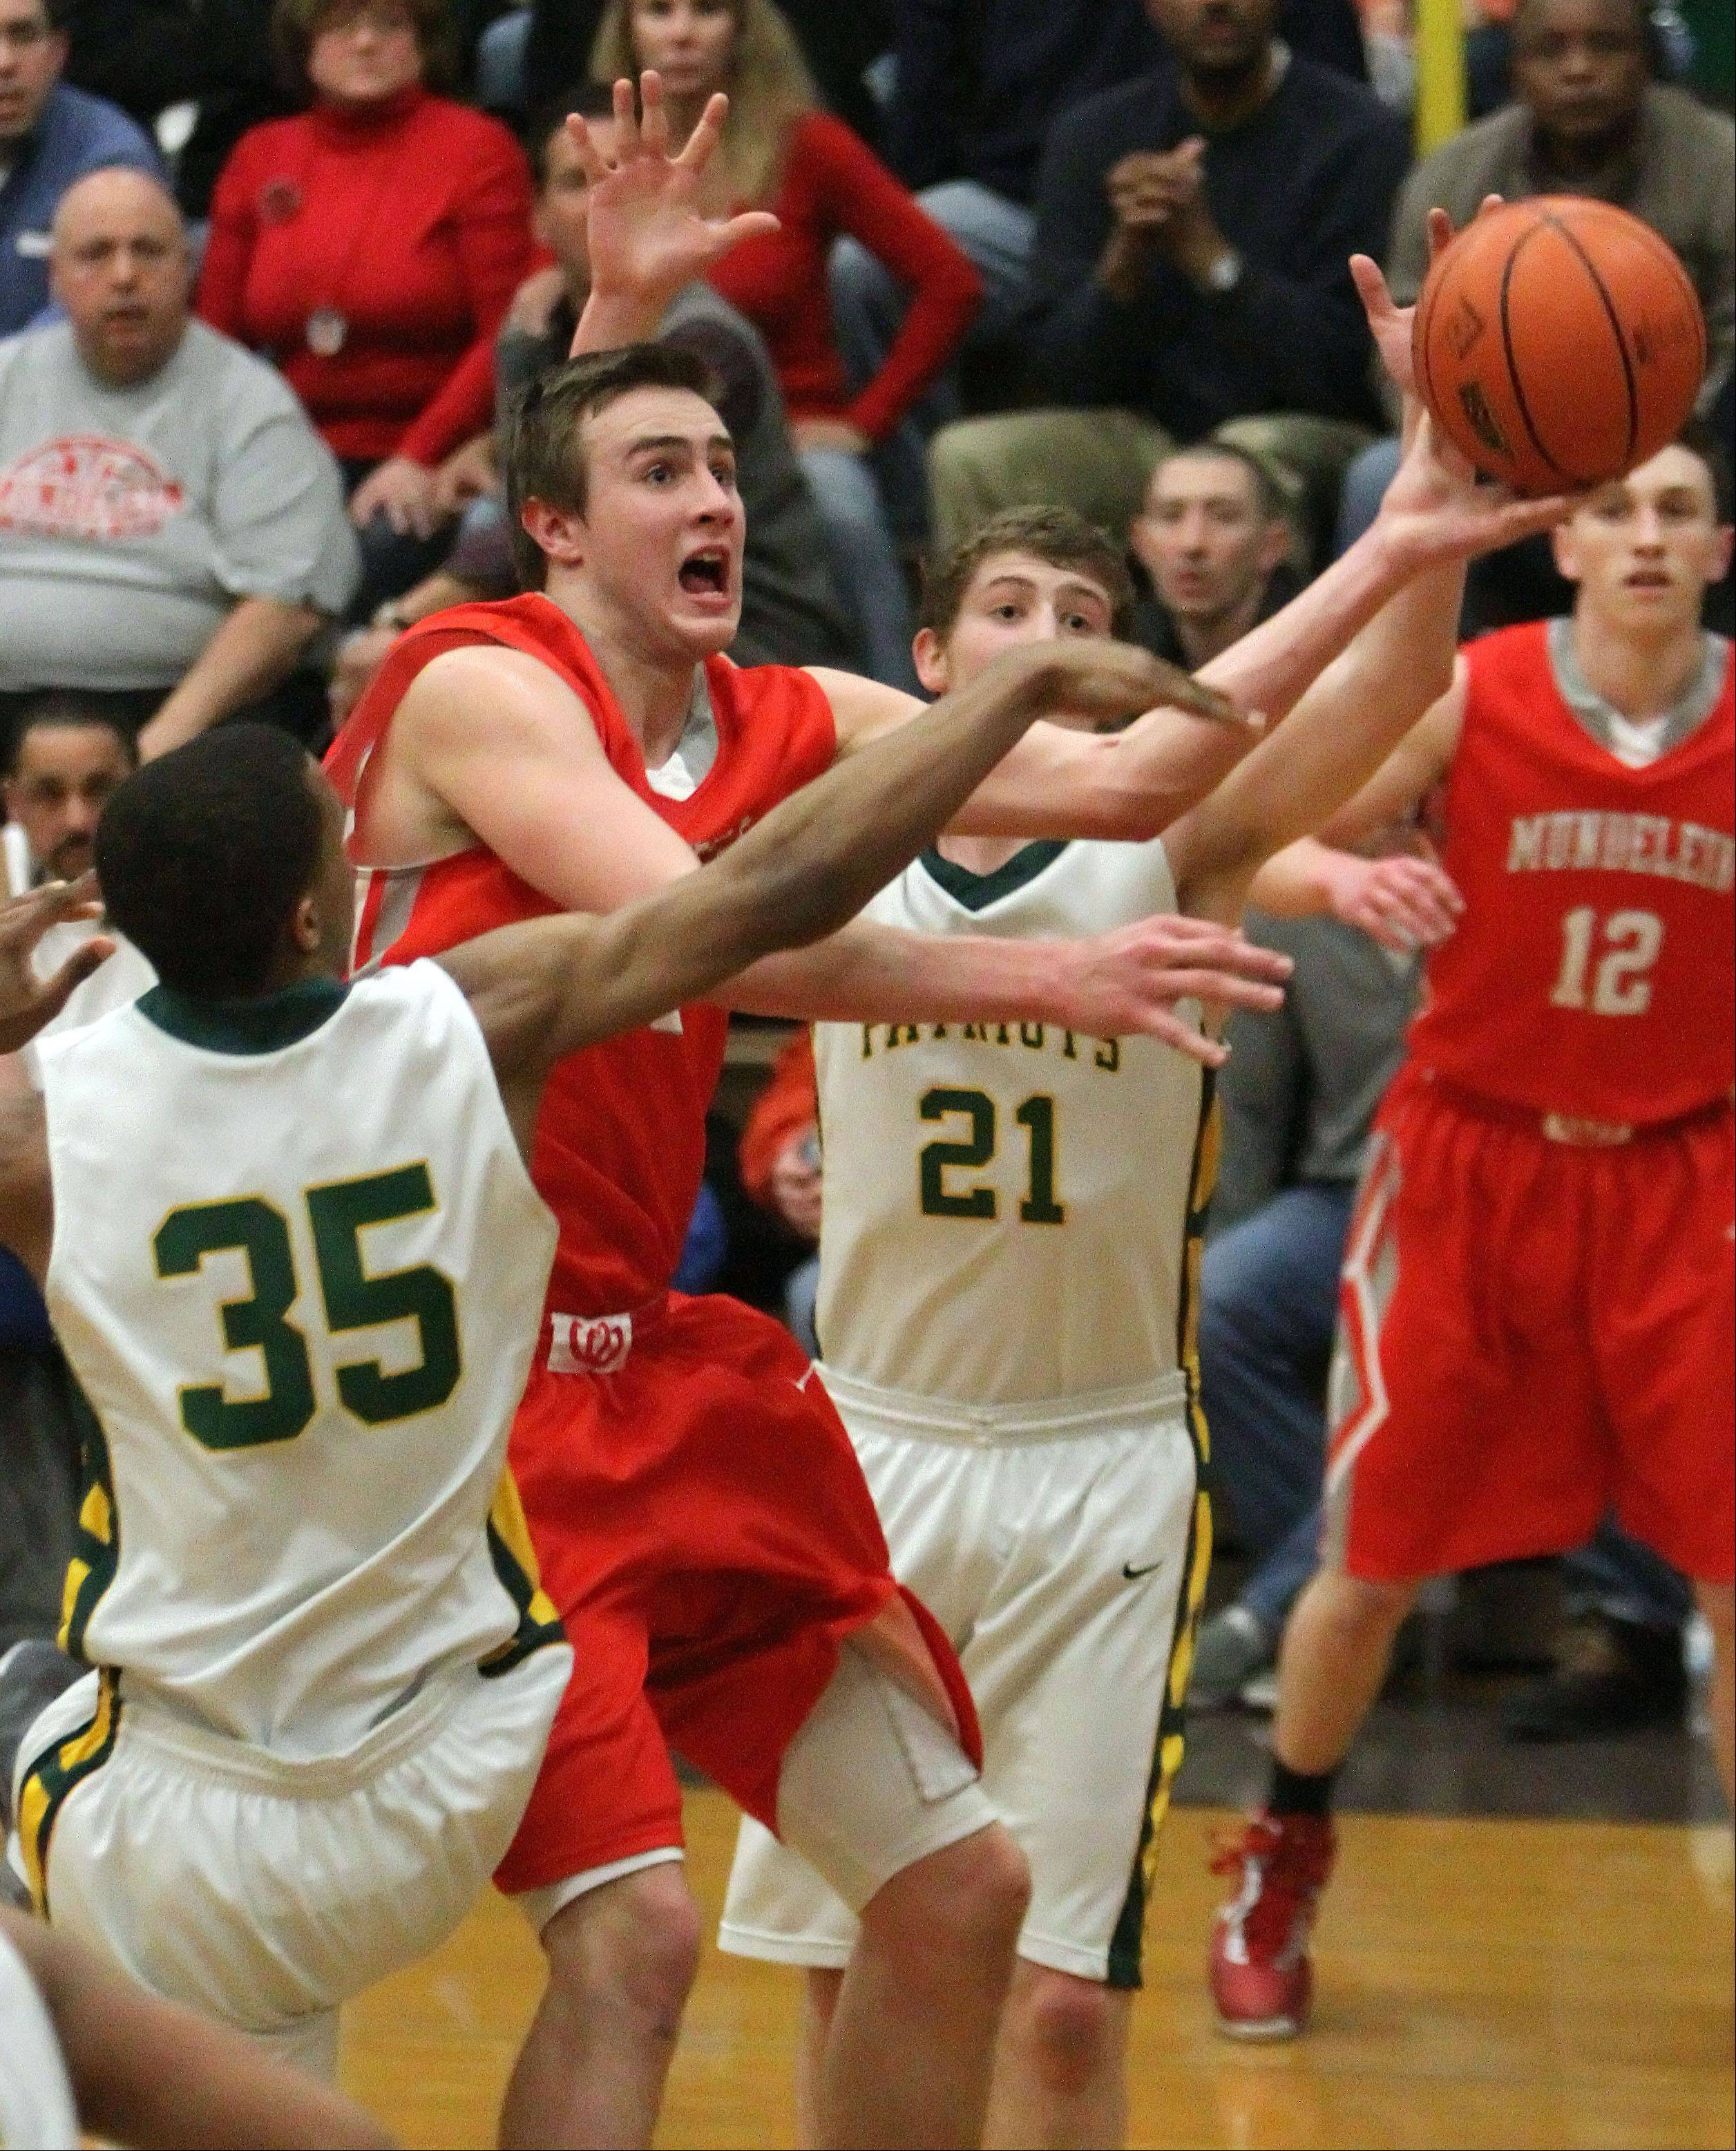 Mundelein's Sean O'Brien, right, drives past Stevenson's Connor Cashaw during the Class 4A Waukegan sectional semifinals Wednesday night.